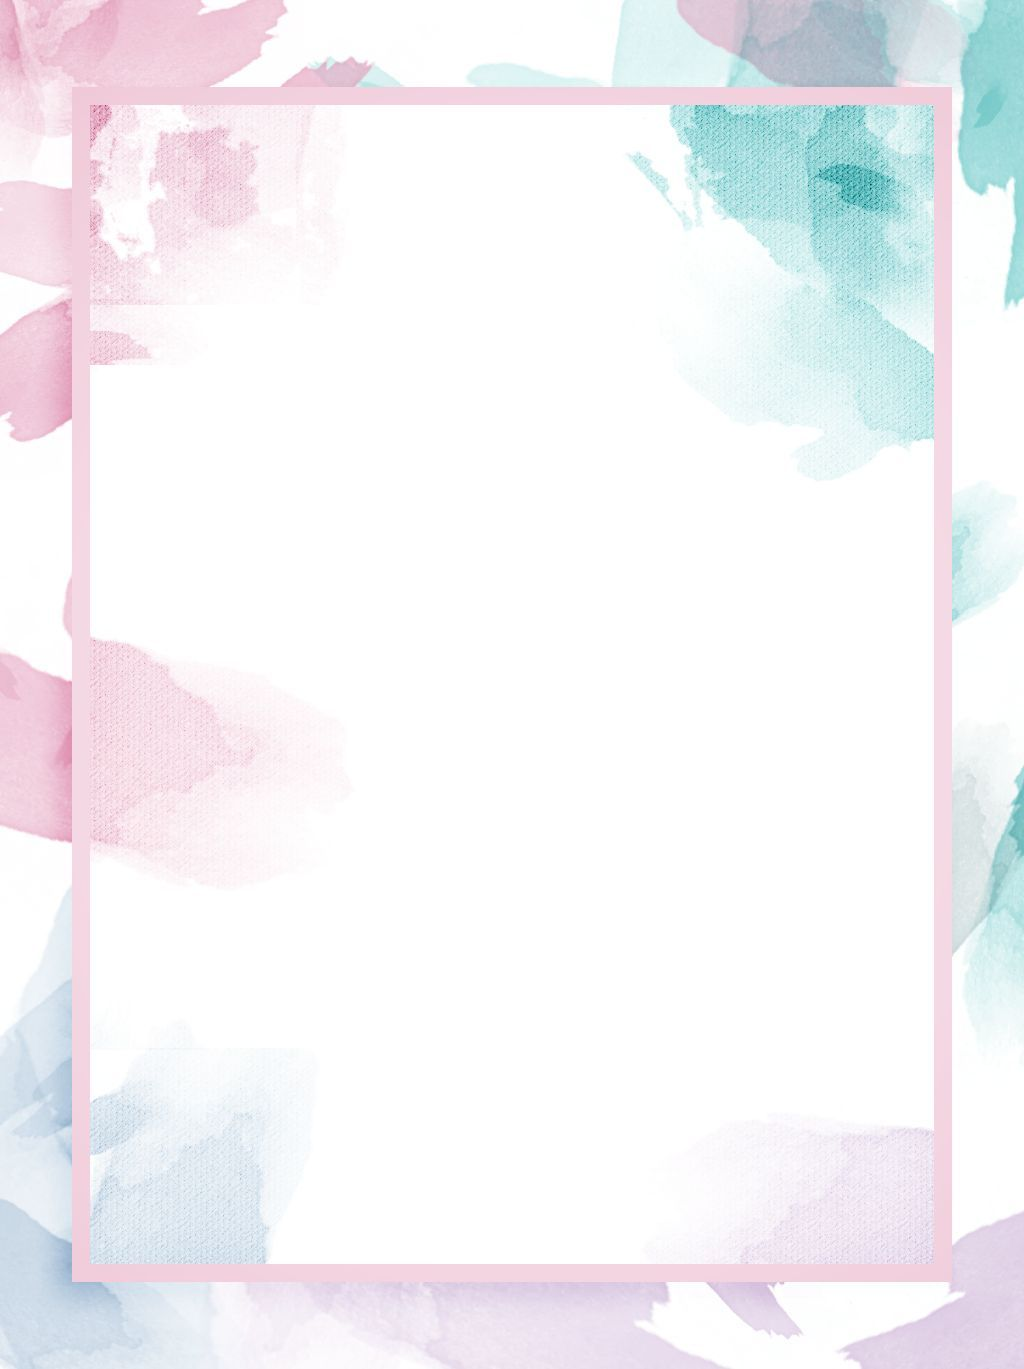 Summer Watercolor Poster Poster Background Design Colorful